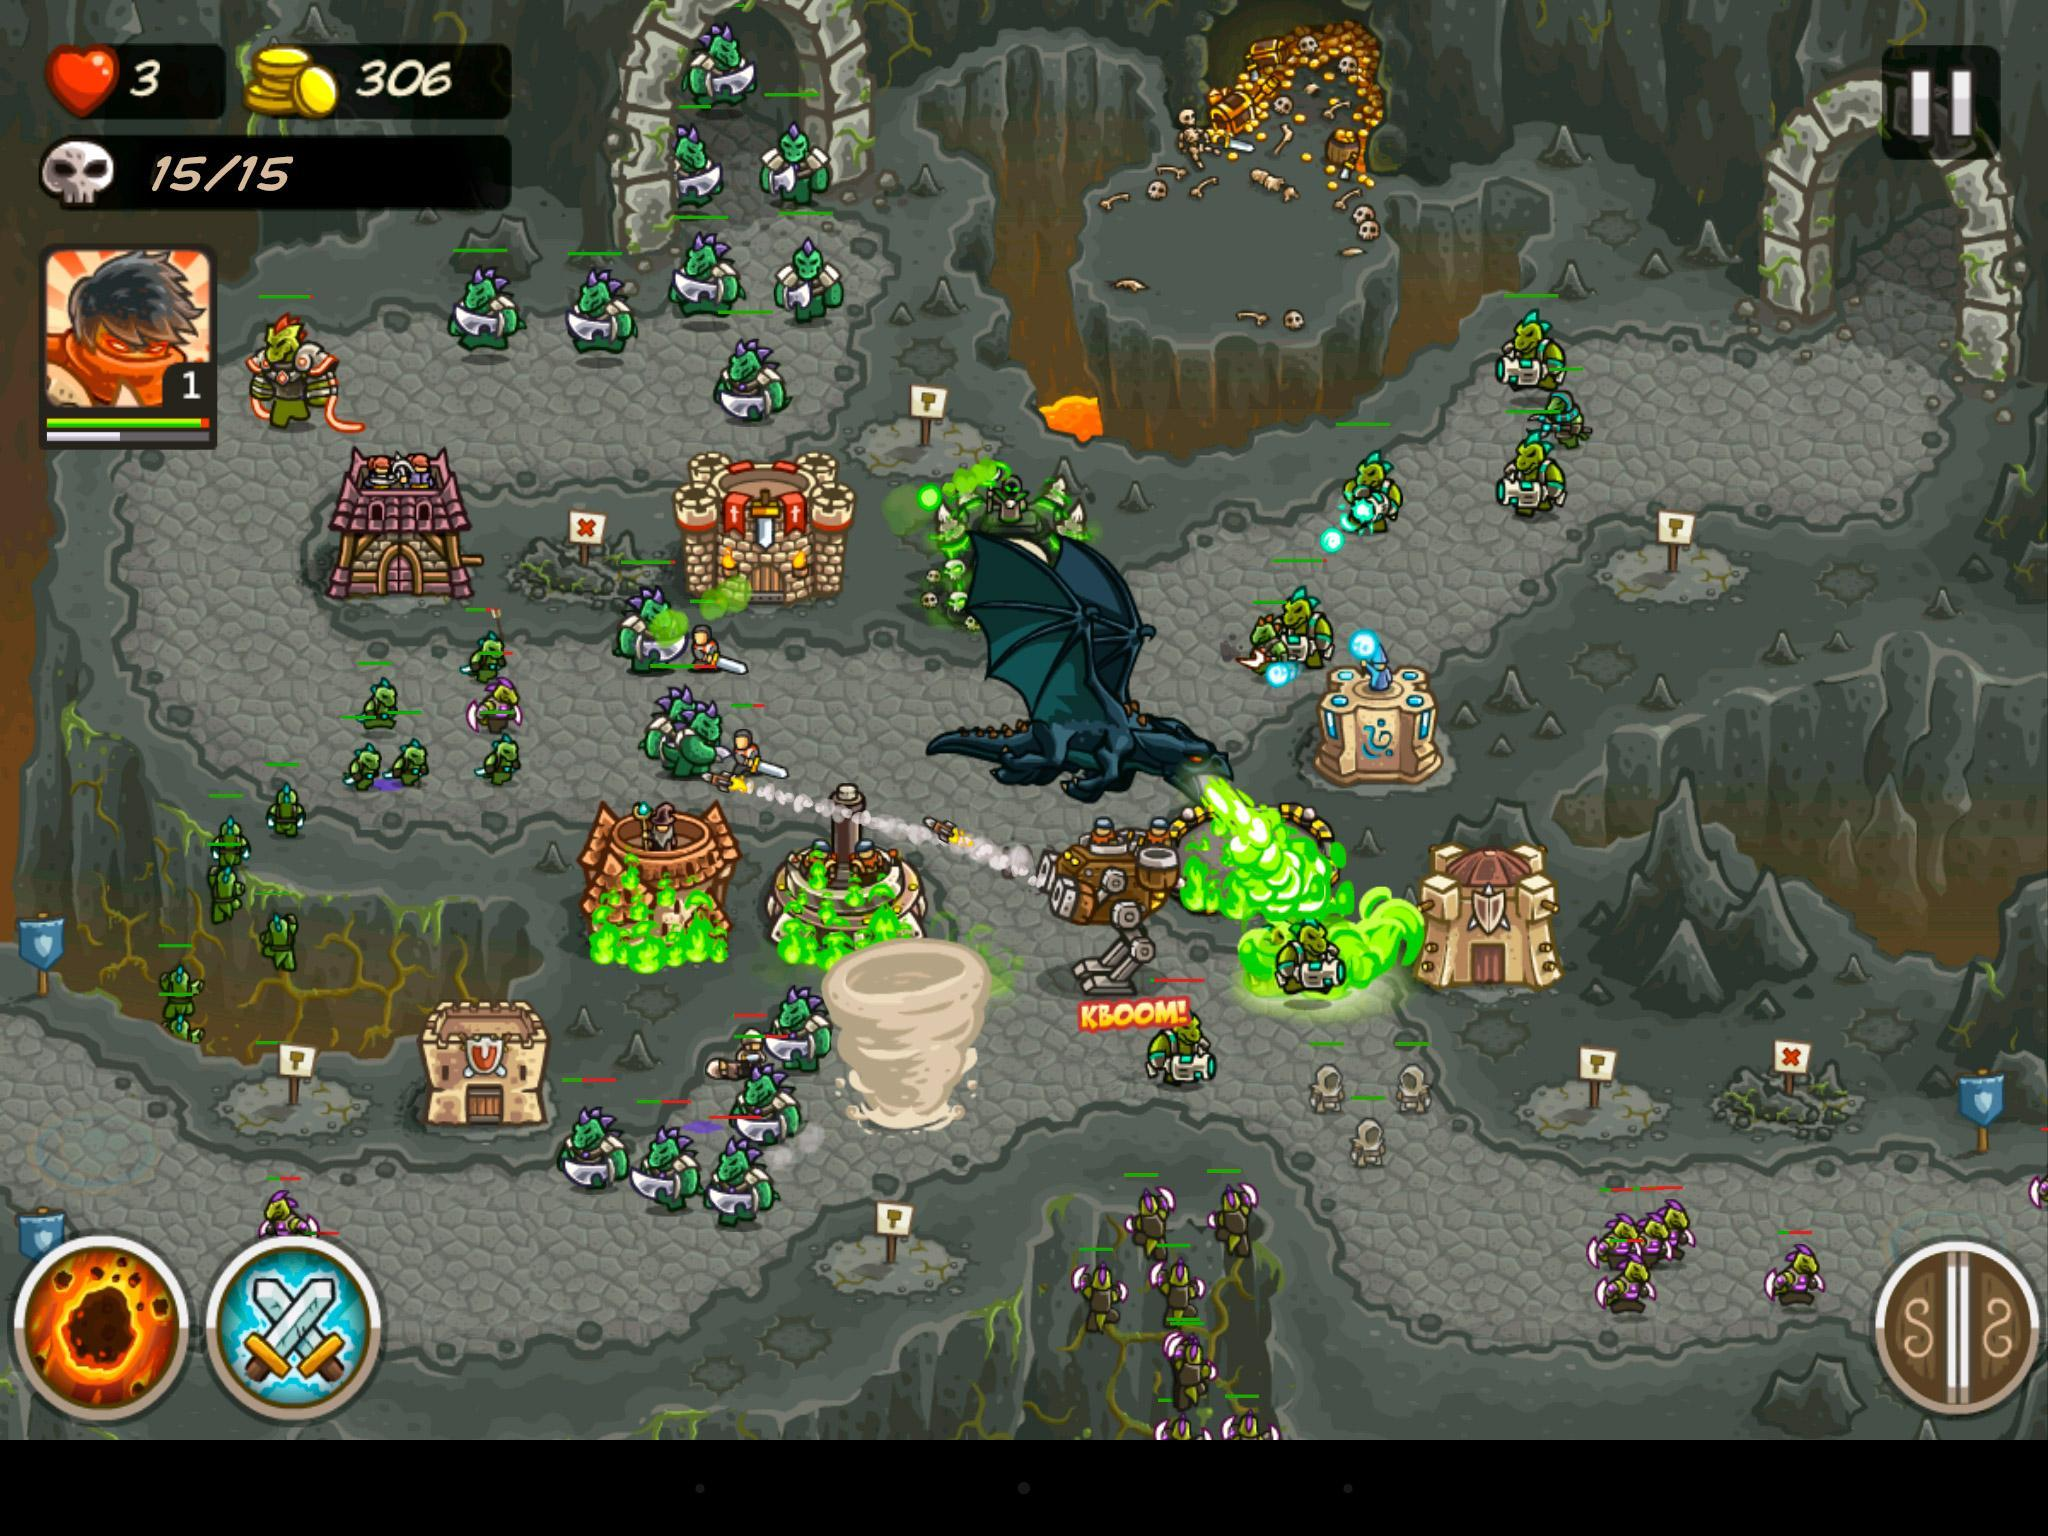 Kingdom Rush Frontiers for Android - APK Download